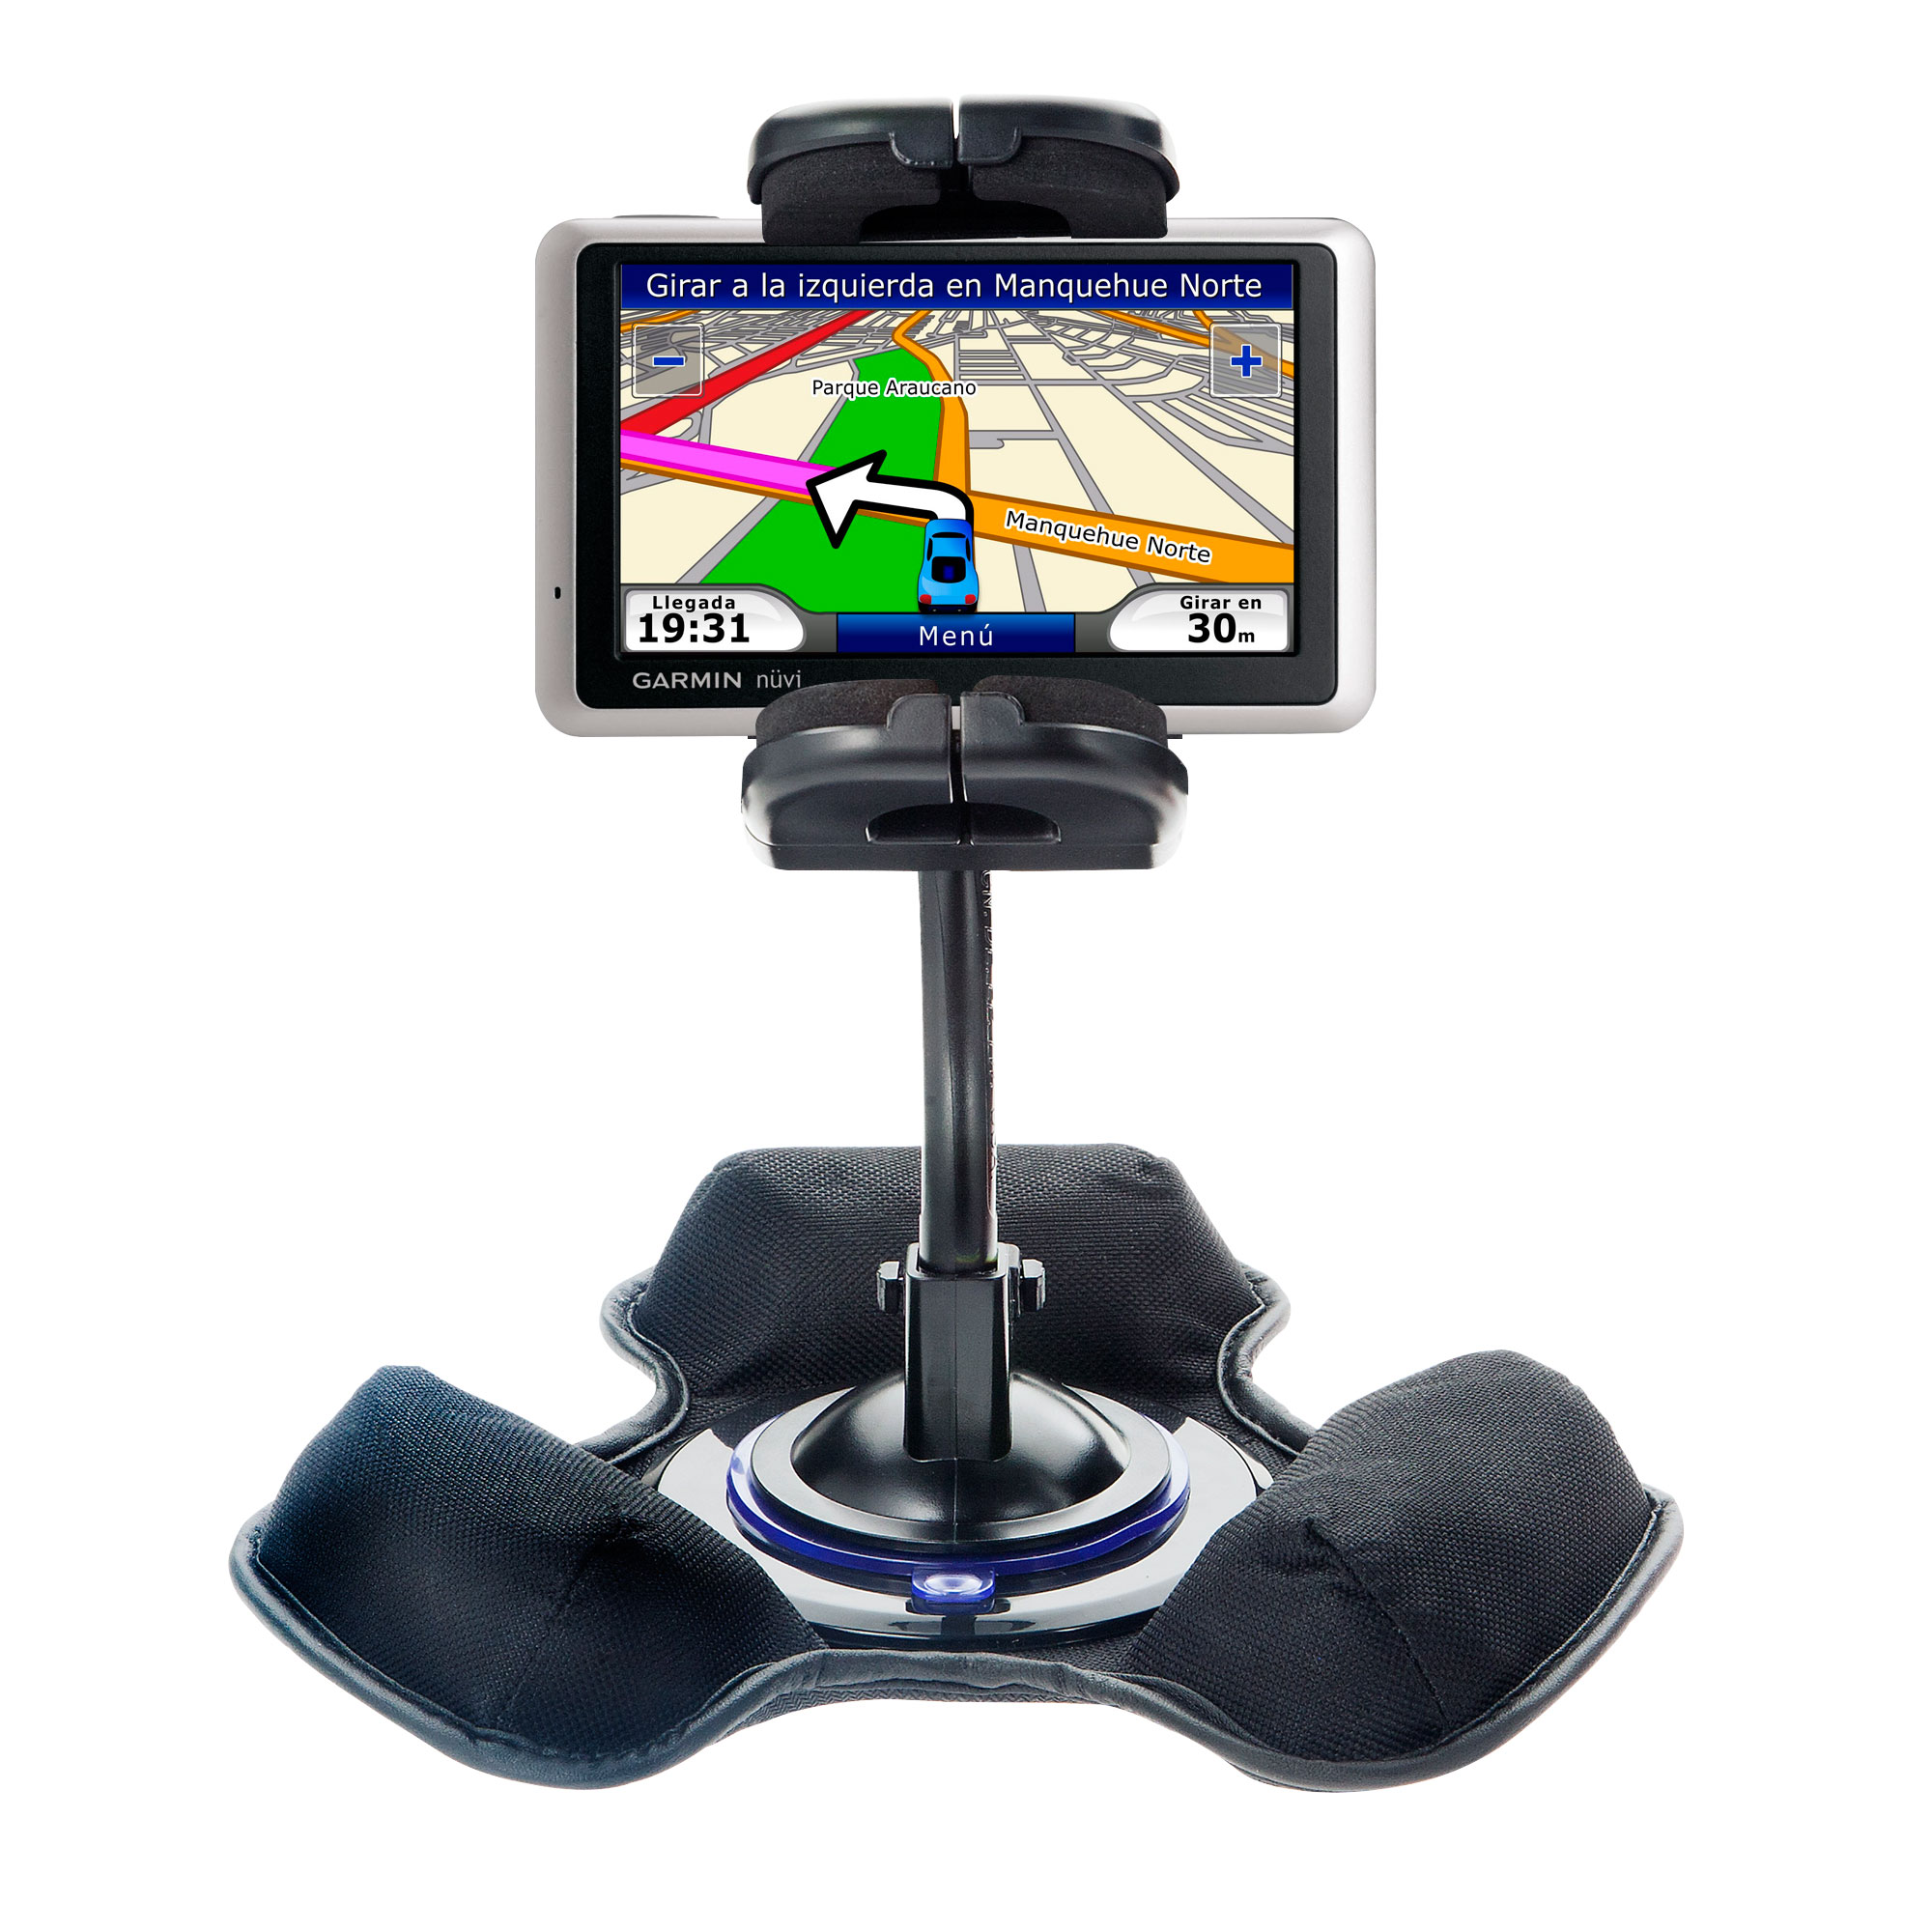 Dash and Windshield Holder compatible with the Garmin Nuvi 1350T